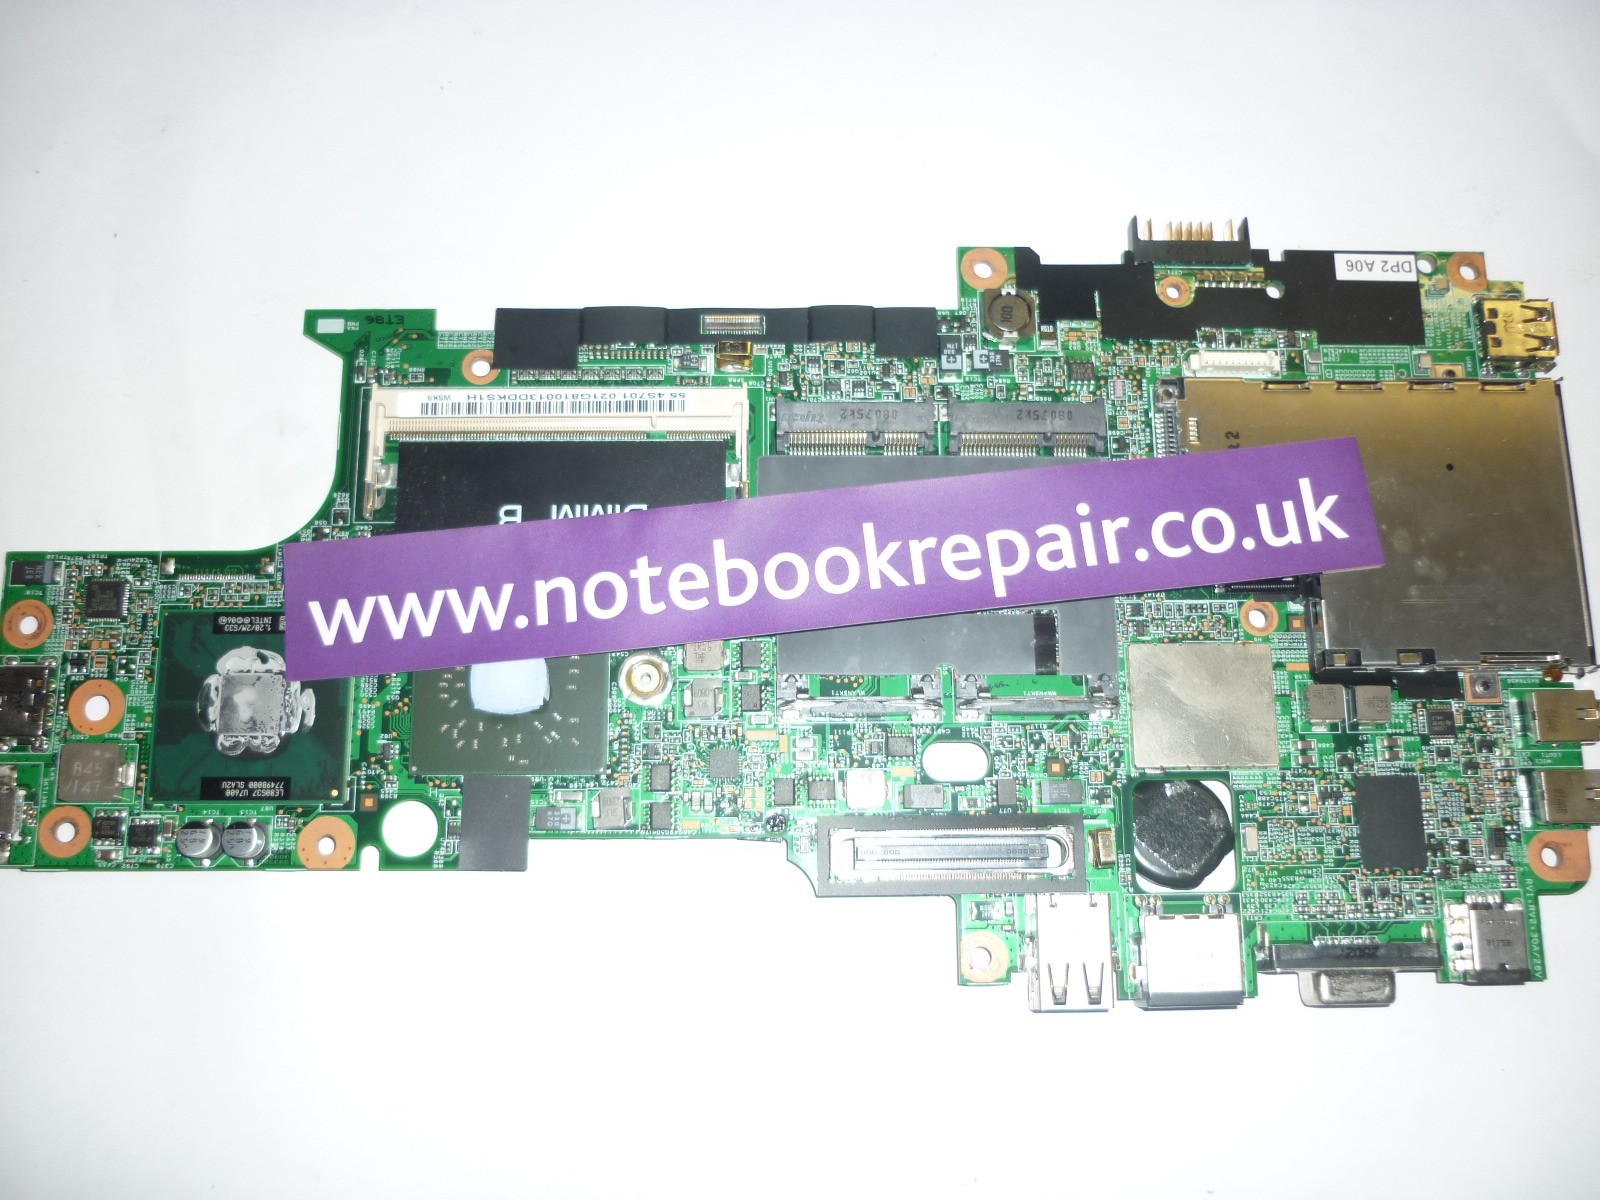 LATITUDE XT SYSTEM BOARD REPAIR